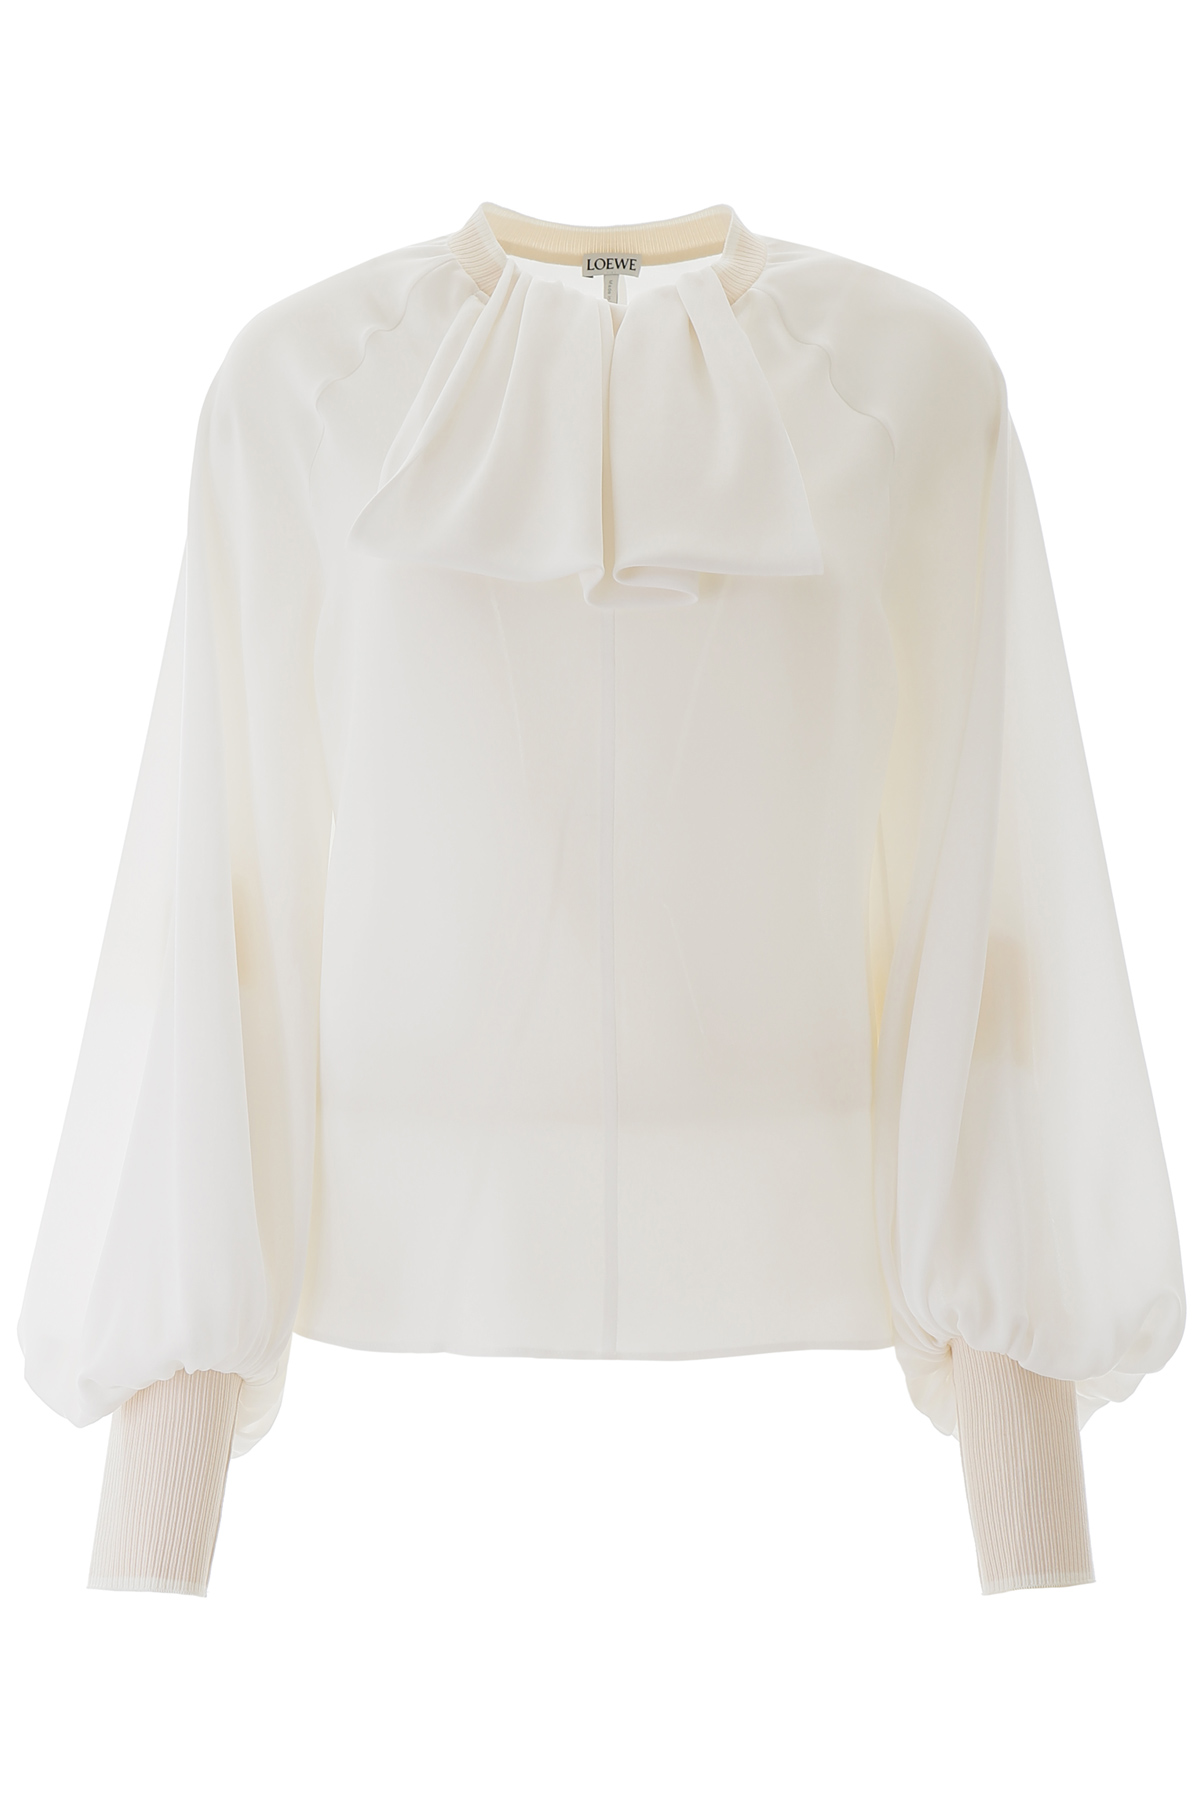 LOEWE BLOUSE WITH SCARF COLLAR 34 White Silk